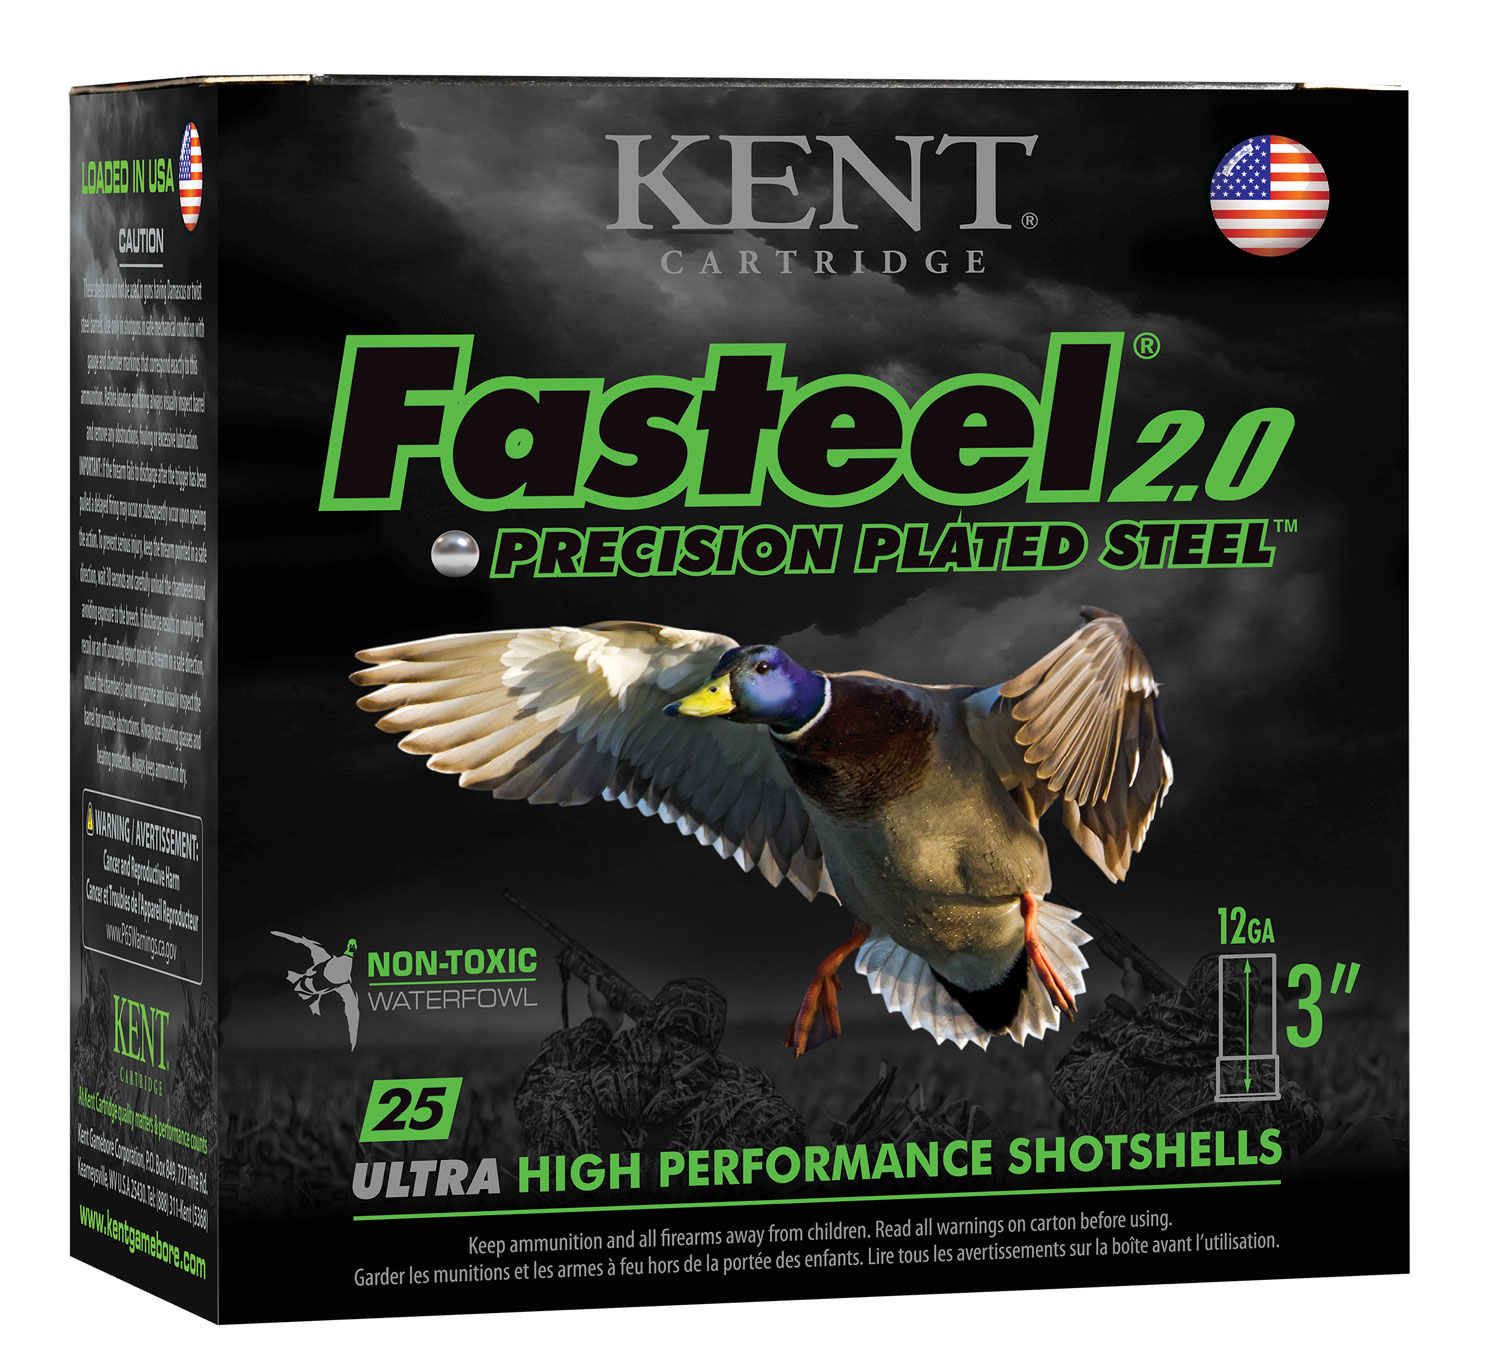 Kent Cartridge K123FS363 Fasteel 2.0  12 Gauge 3